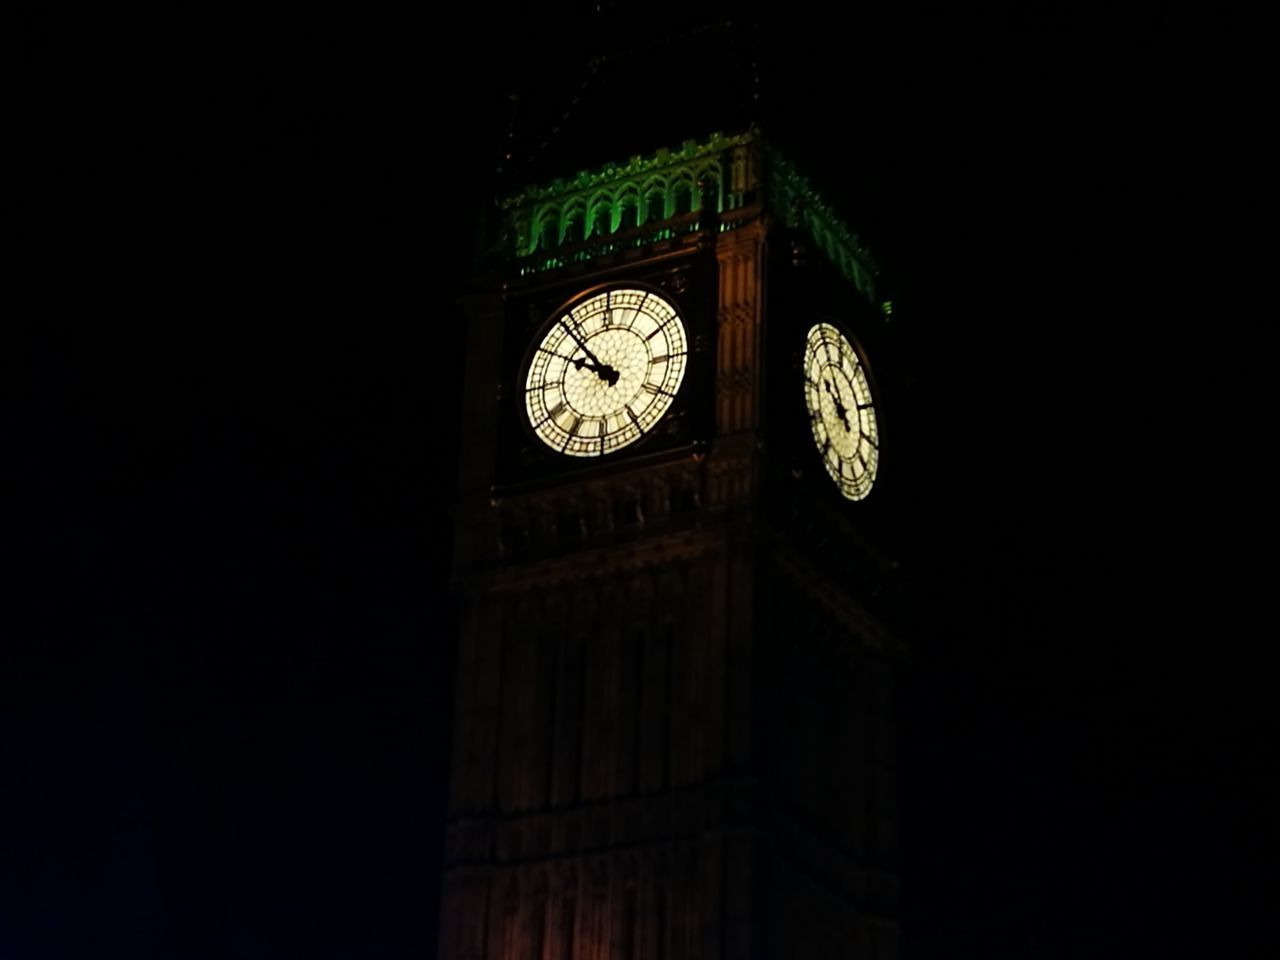 ELIZABETH TOWER (Big Ben)- Midnight No People Outdoors Day Clock Tower Clock Tower Big Ben Hello World London Huawei P9 Plus Big Ben, London Time Clock Face Minute Hand Instrument Of Time Hour Hand